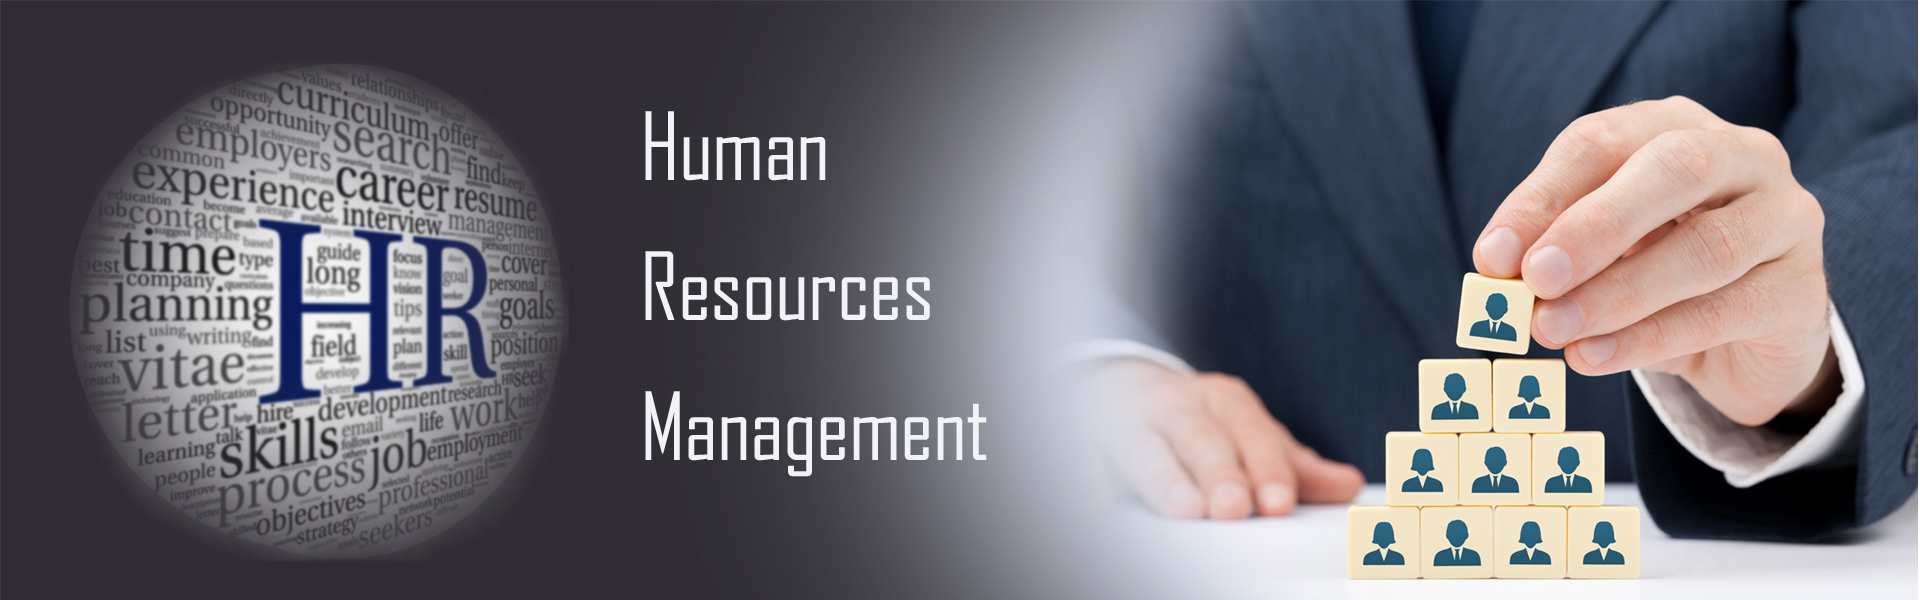 unit human resources management assignment hilton hotel hnd unit 18 human resources management assignment hilton hotel assignment help in uk